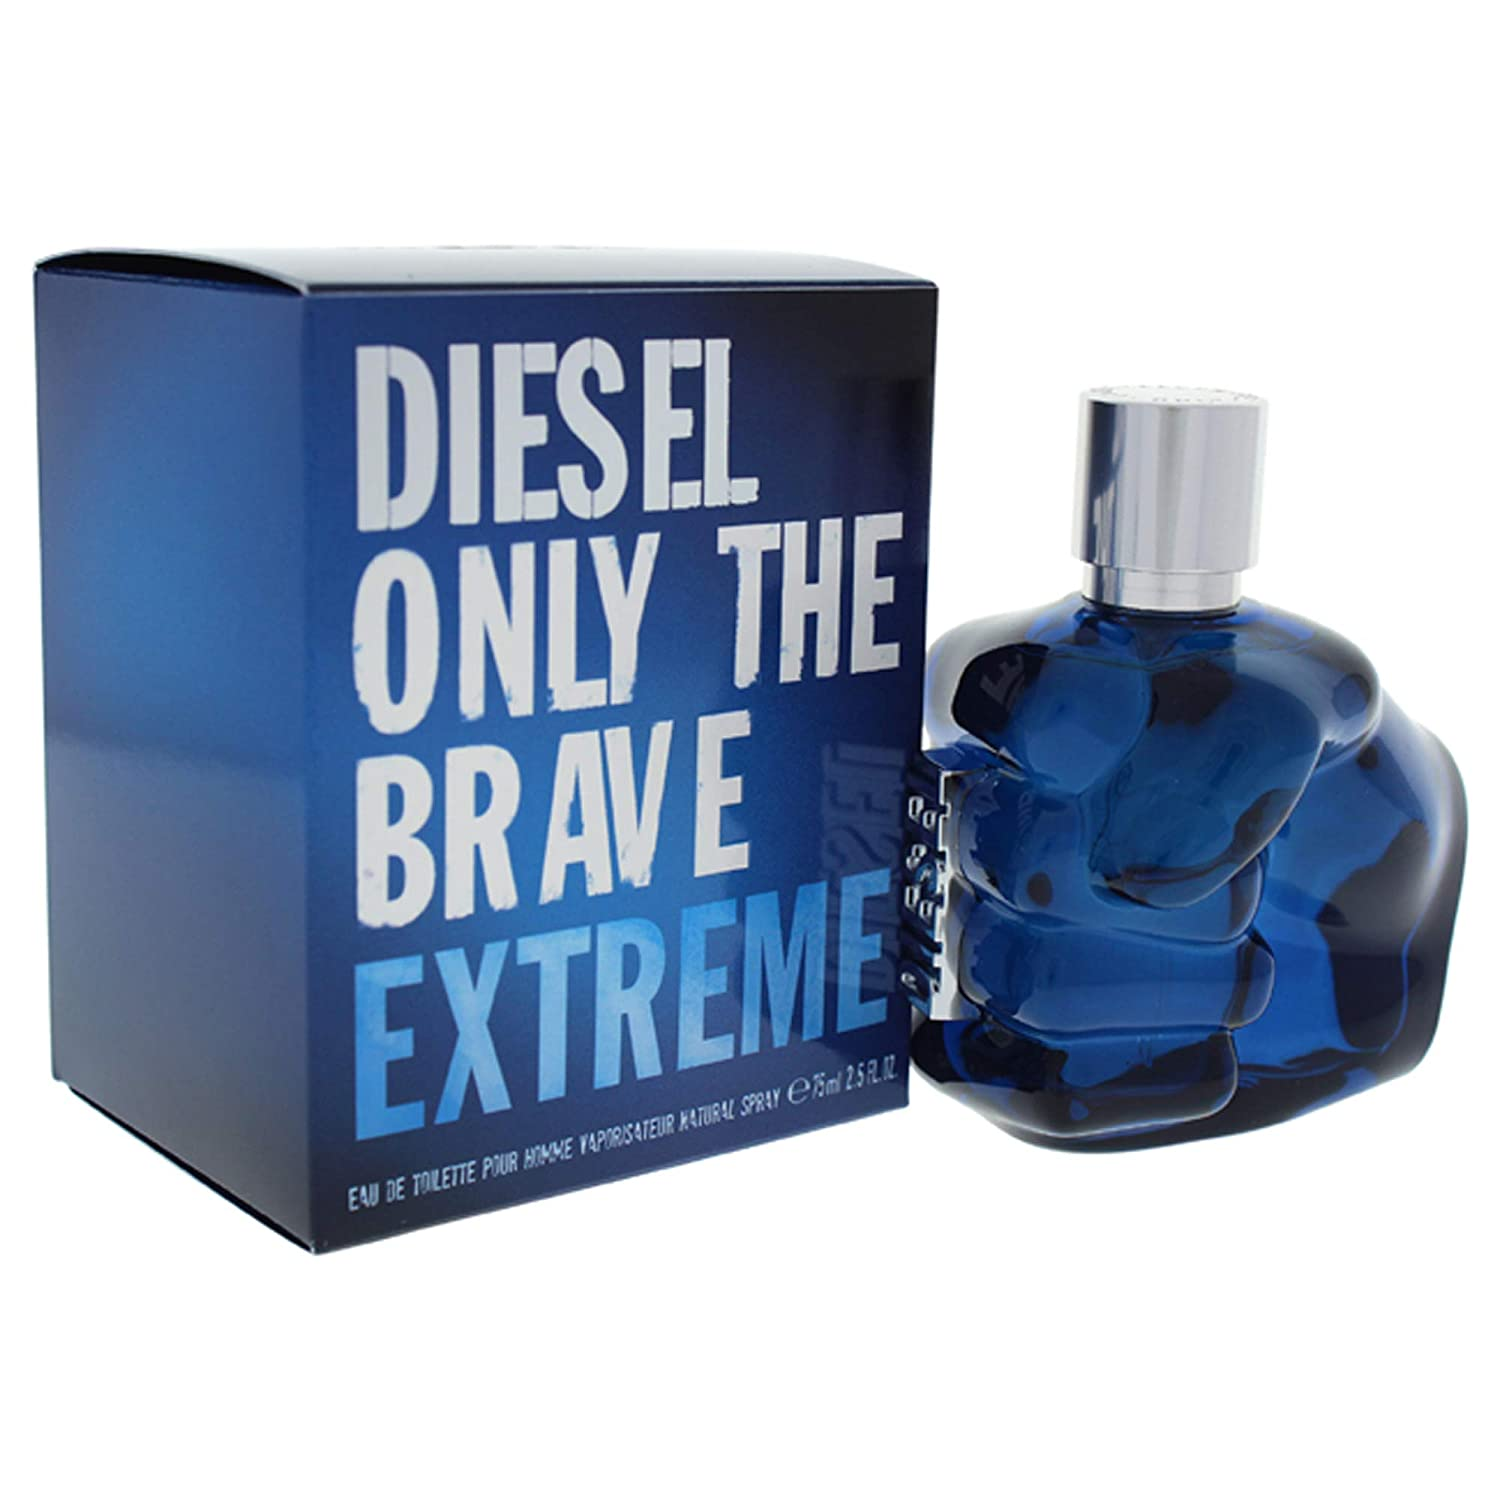 Diesel Excellence Only The New life Brave Extreme By for Oz - Men Spr Edt 2.5